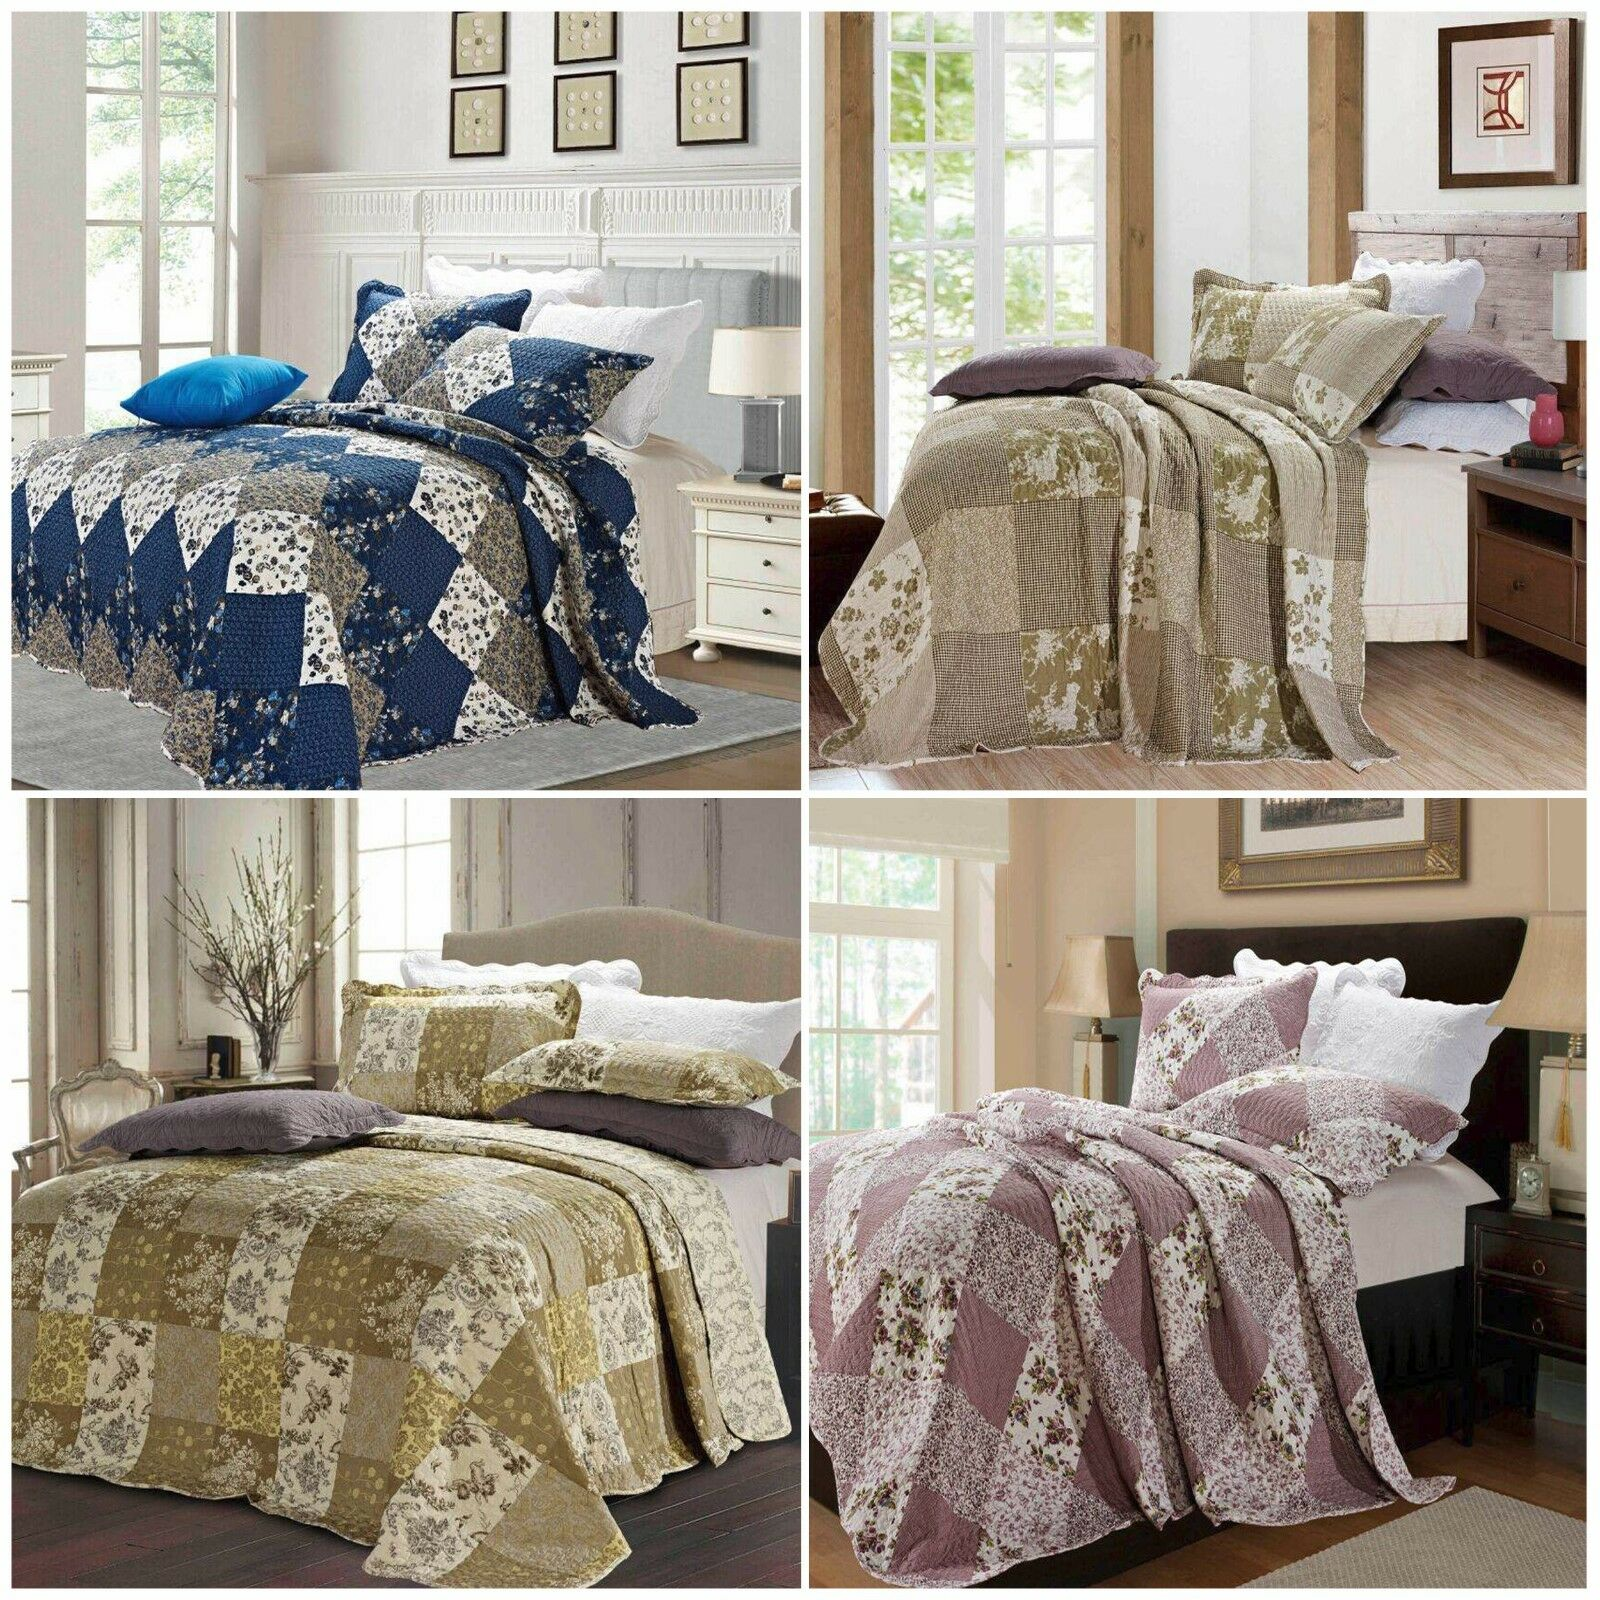 Beautiful Floral Vintage Patchwork Quilted Bedspread Throws with 2 Pillow Shams